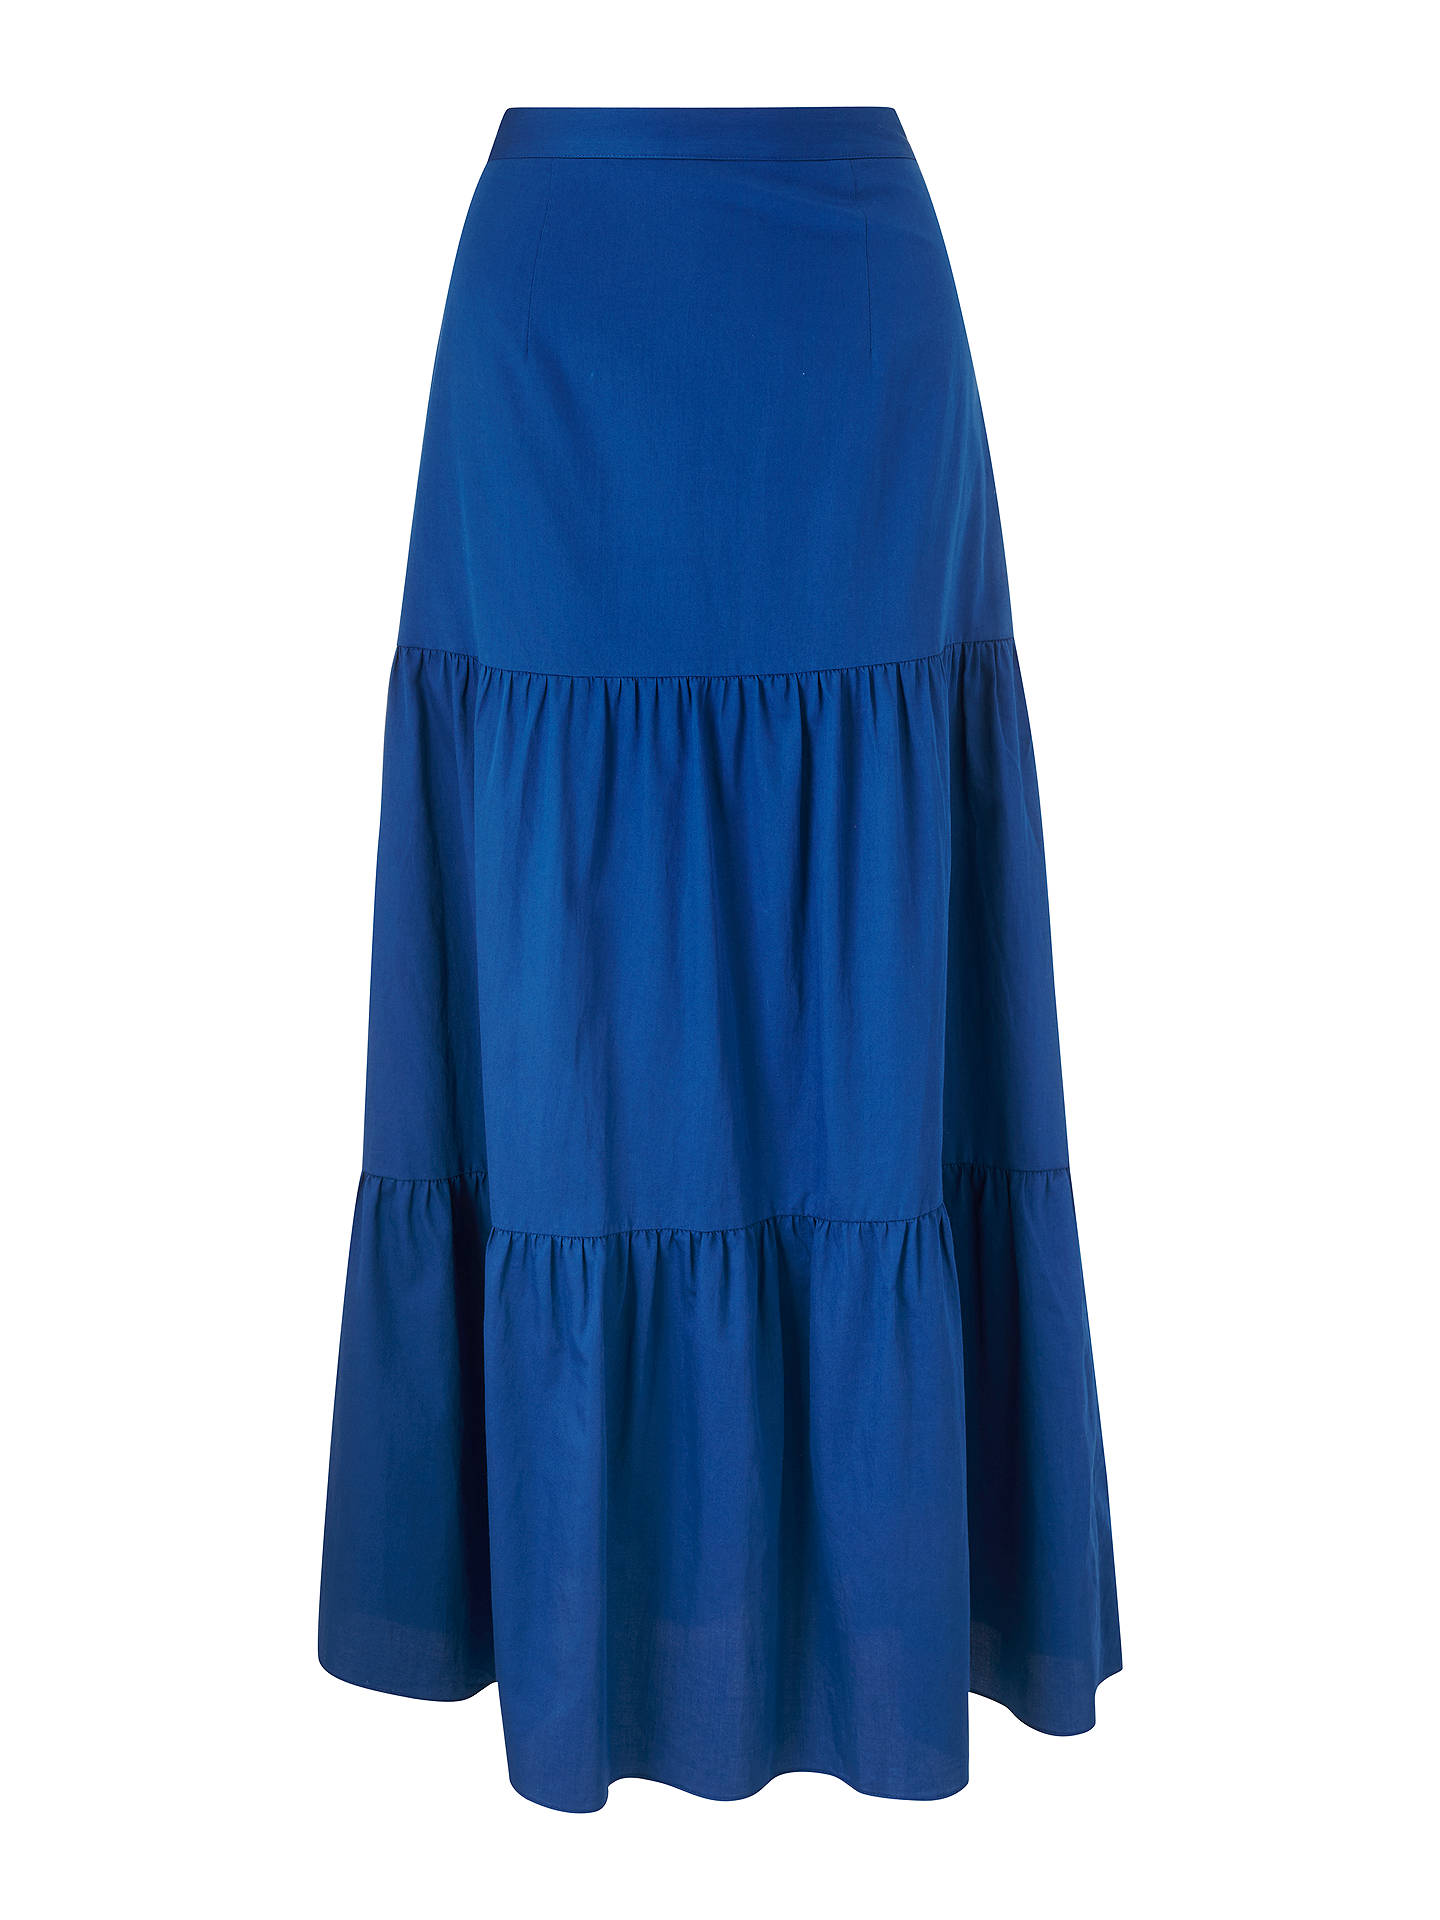 BuyBoden Thea Maxi Skirt, Riviera Blue, 8 Online at johnlewis.com